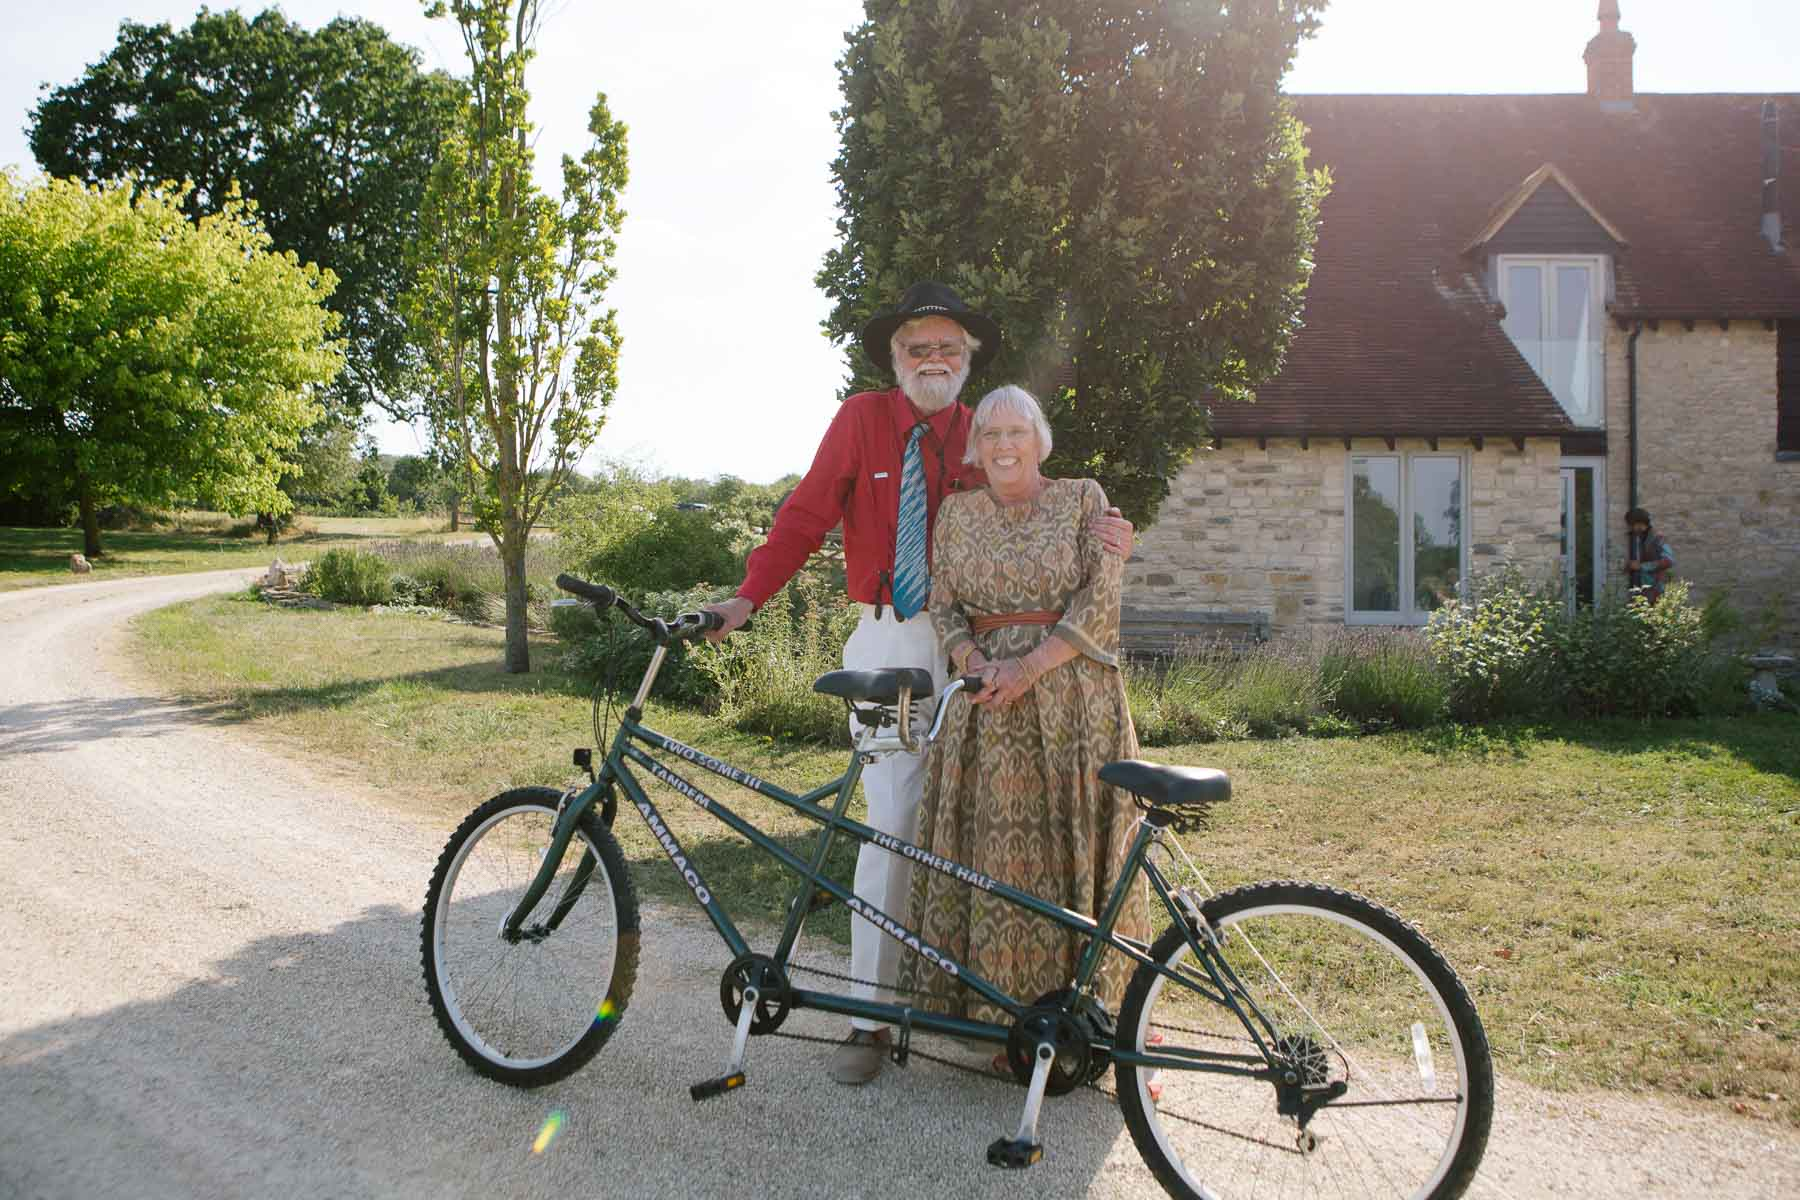 Bride and groom pose next to tandem bicycle